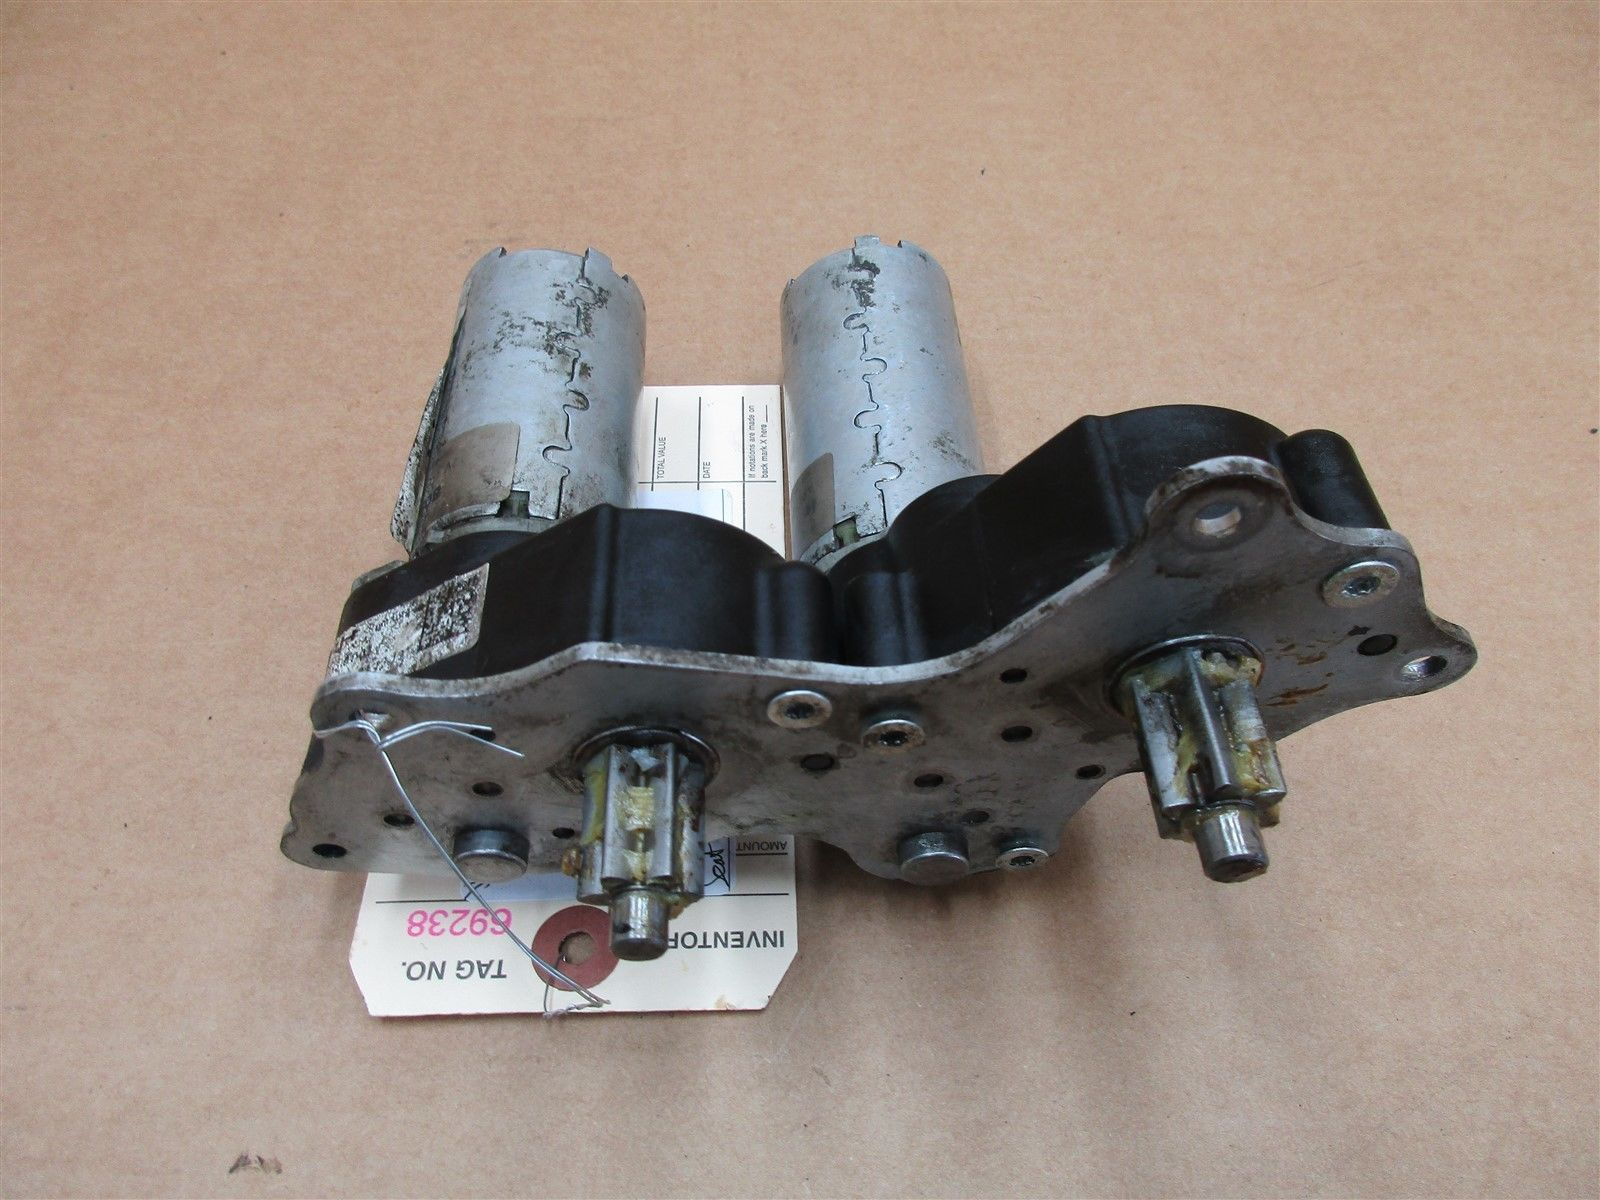 14 Panamera 4S Turbo AWD 970 Porsche R FRONT SEAT MOTORS 97052101831 16 N/A